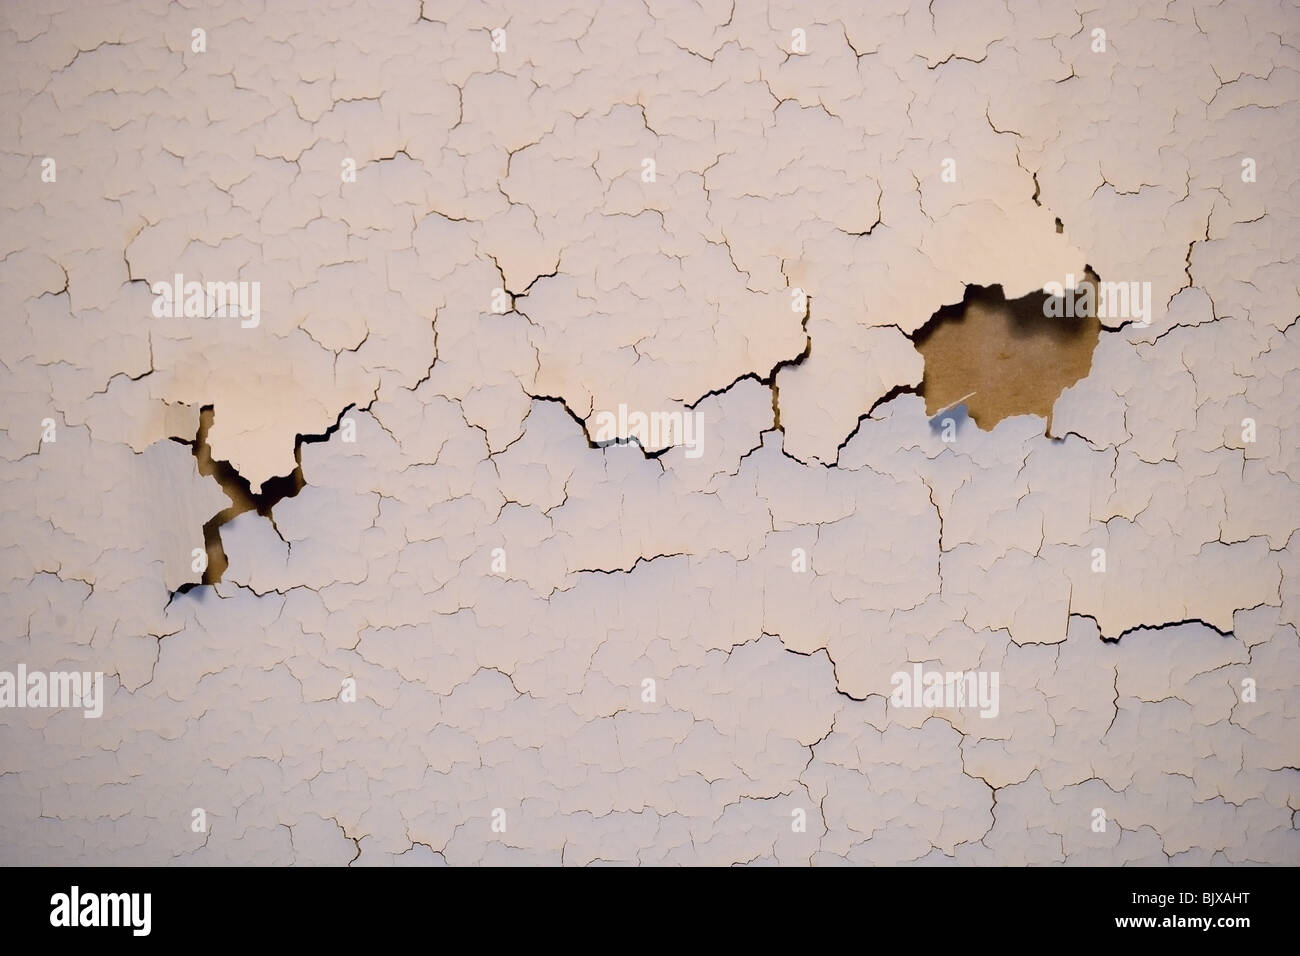 Paint cracking on an interior wall of a house. - Stock Image